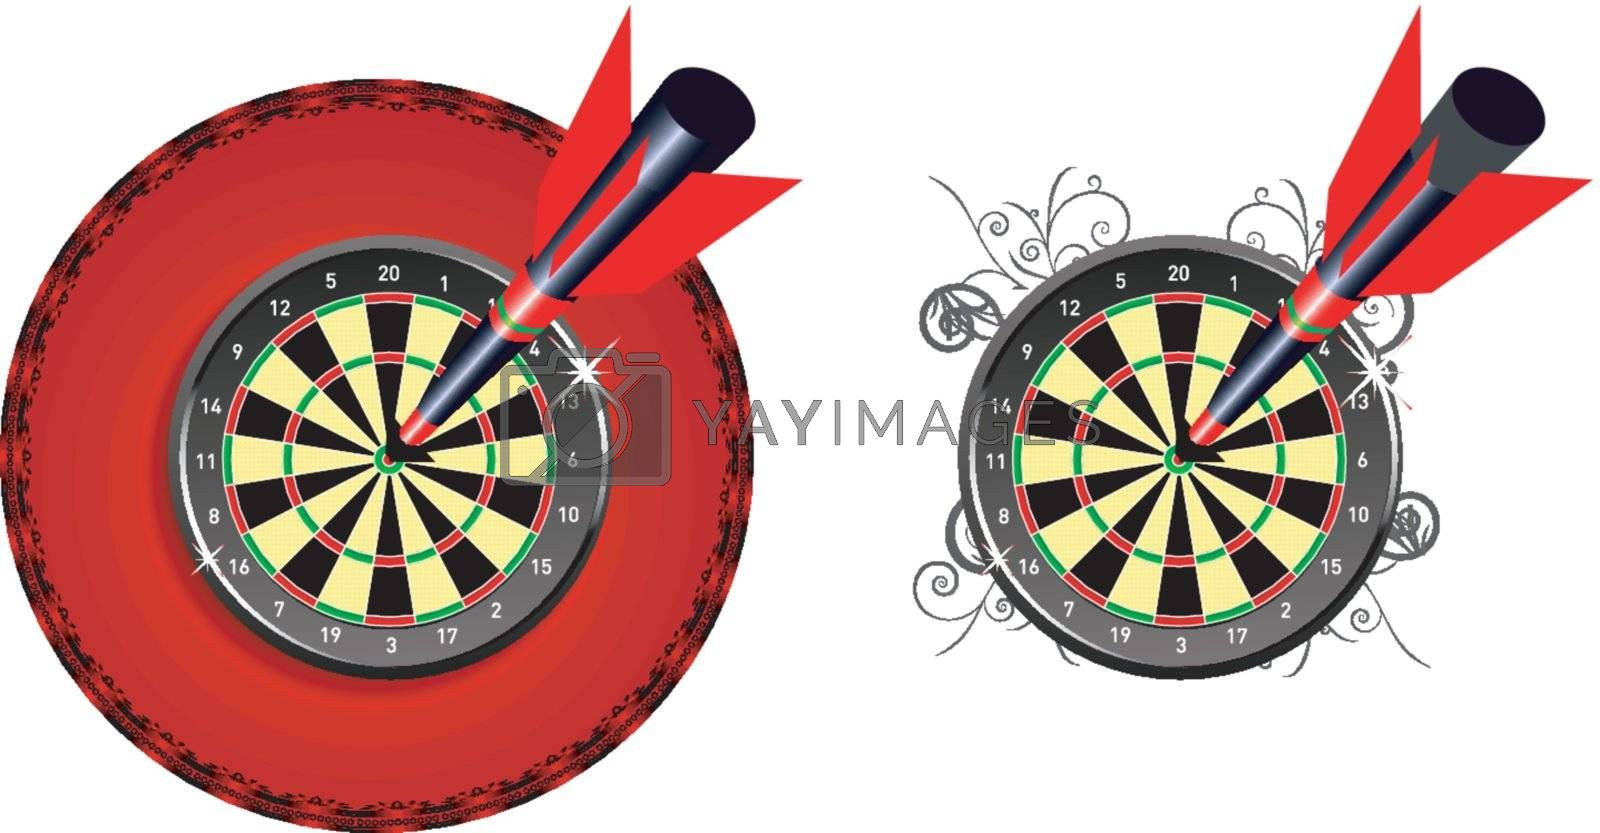 Darts as a concept to achieve the goal